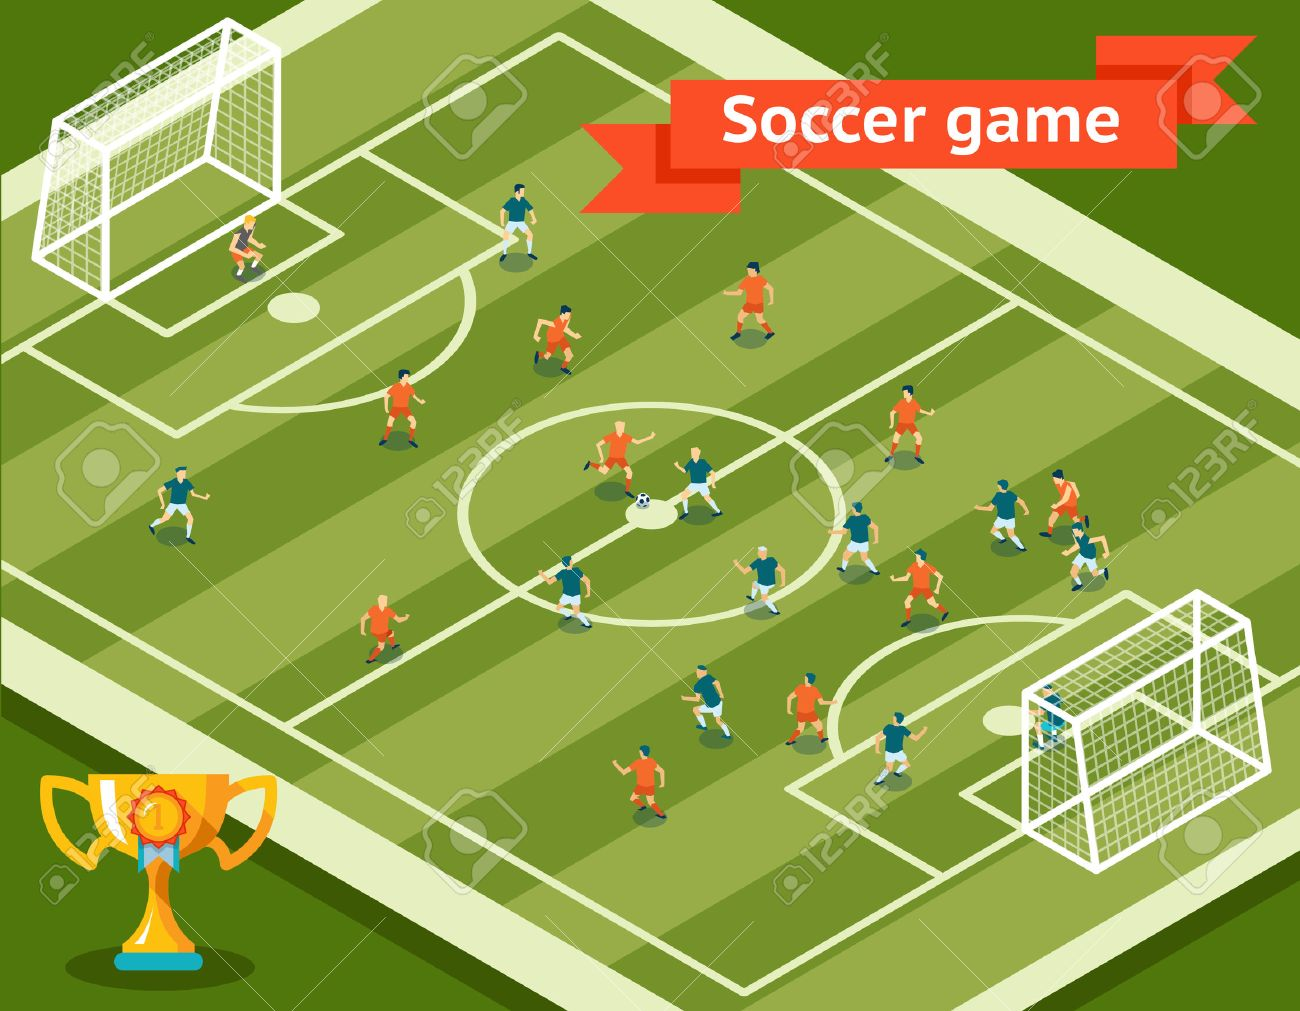 Soccer Game Football Field And Players Royalty Free Cliparts Vectors And Stock Illustration Image 38425446